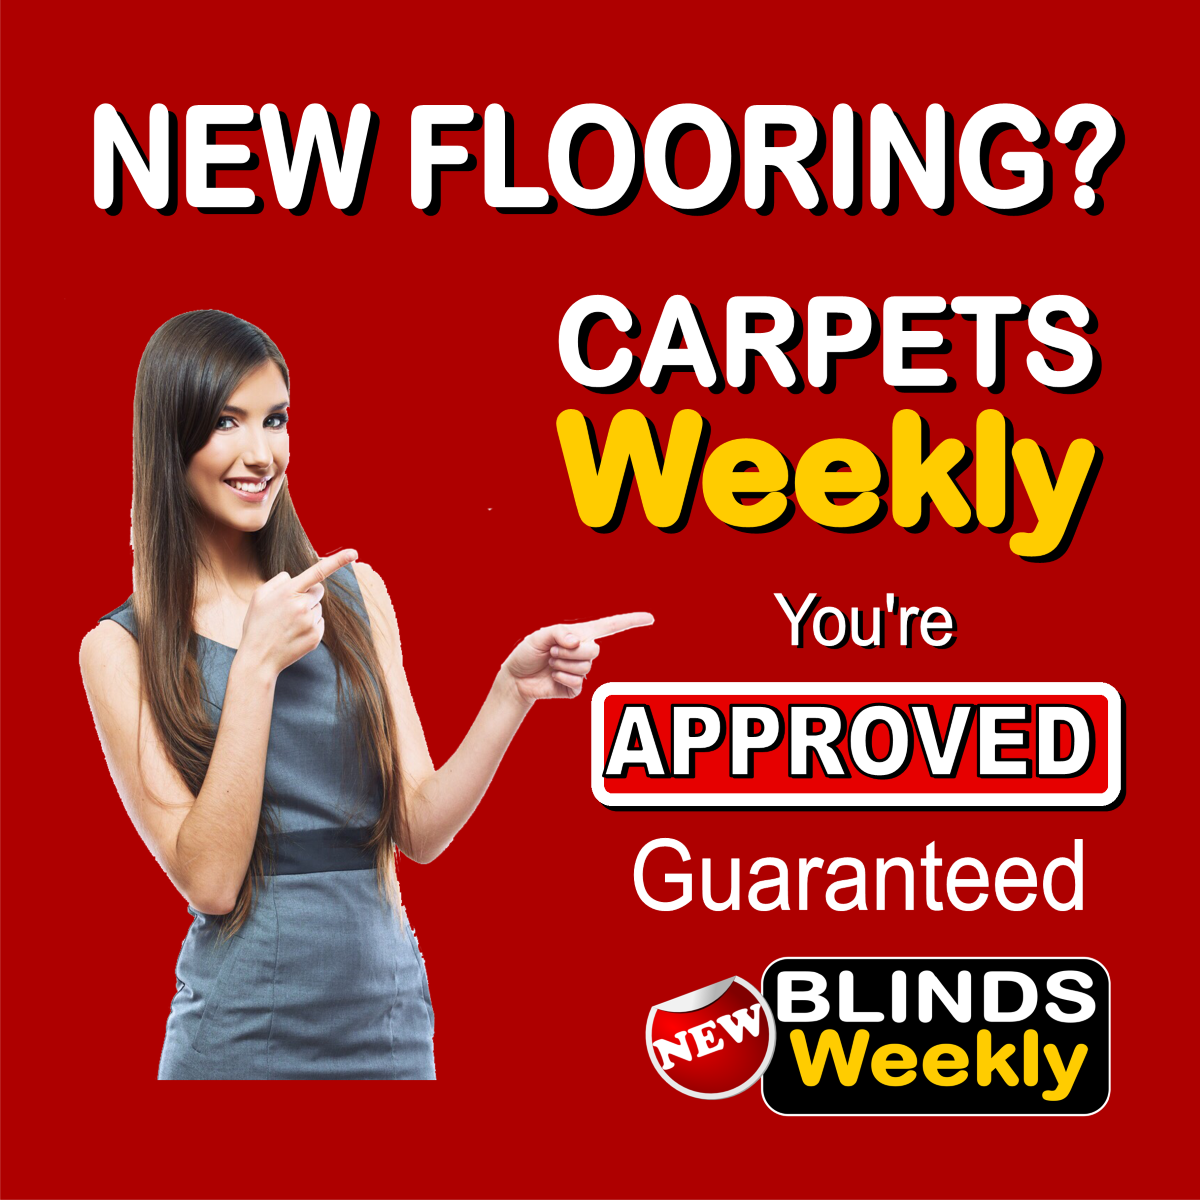 Carpet Deals from Carpets Weekly www.carpetsweekly.co.uk Tel 08007720966